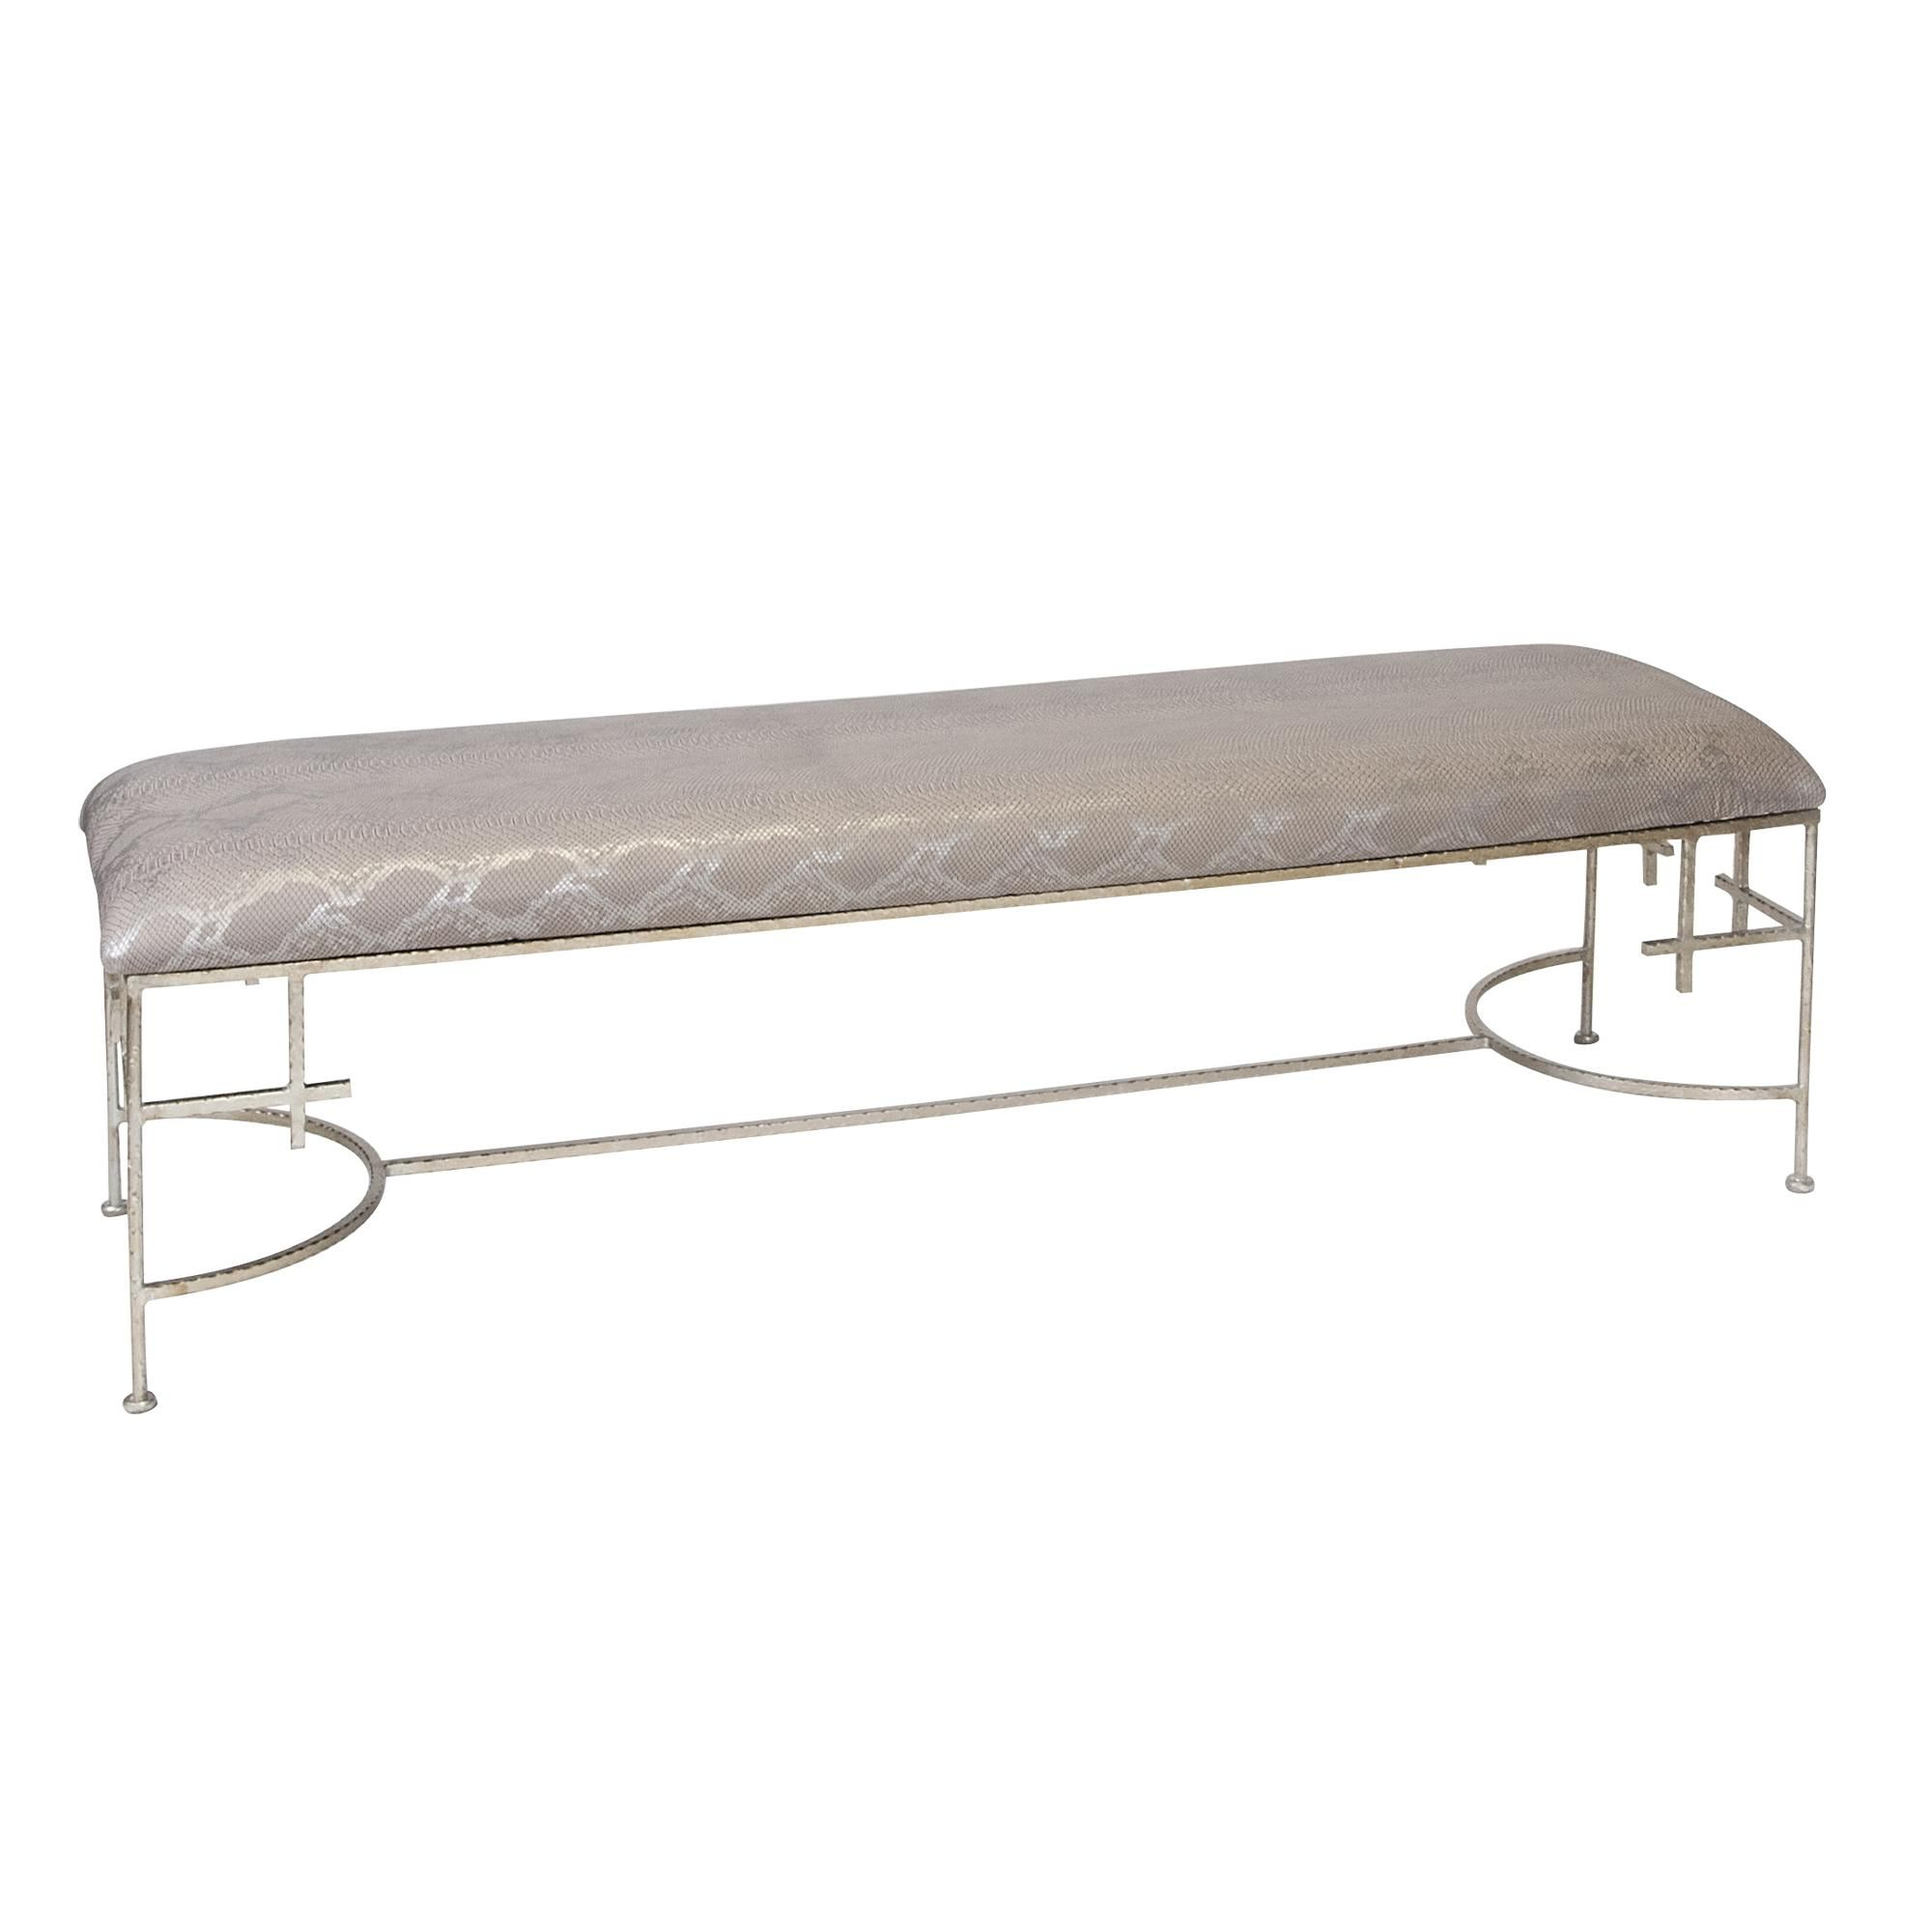 Admirable Worlds Away Augusta Silver Leaf Bench With Faux Snake Skin Machost Co Dining Chair Design Ideas Machostcouk